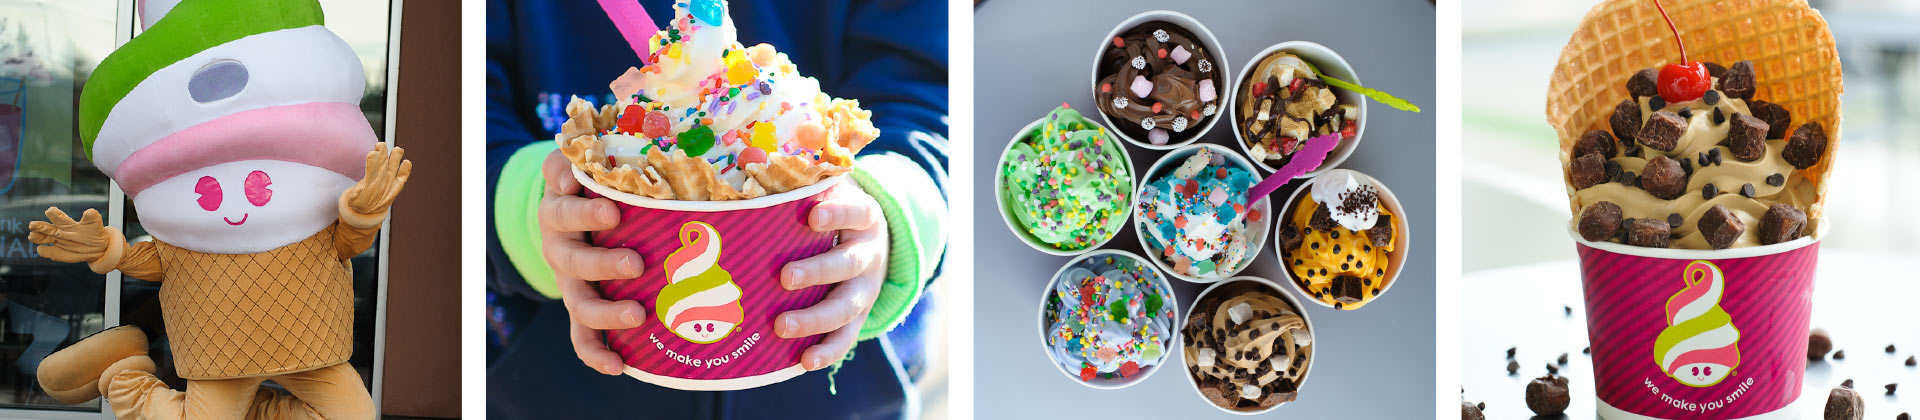 A variety of Menchie's frozen yogurt flavors and cups